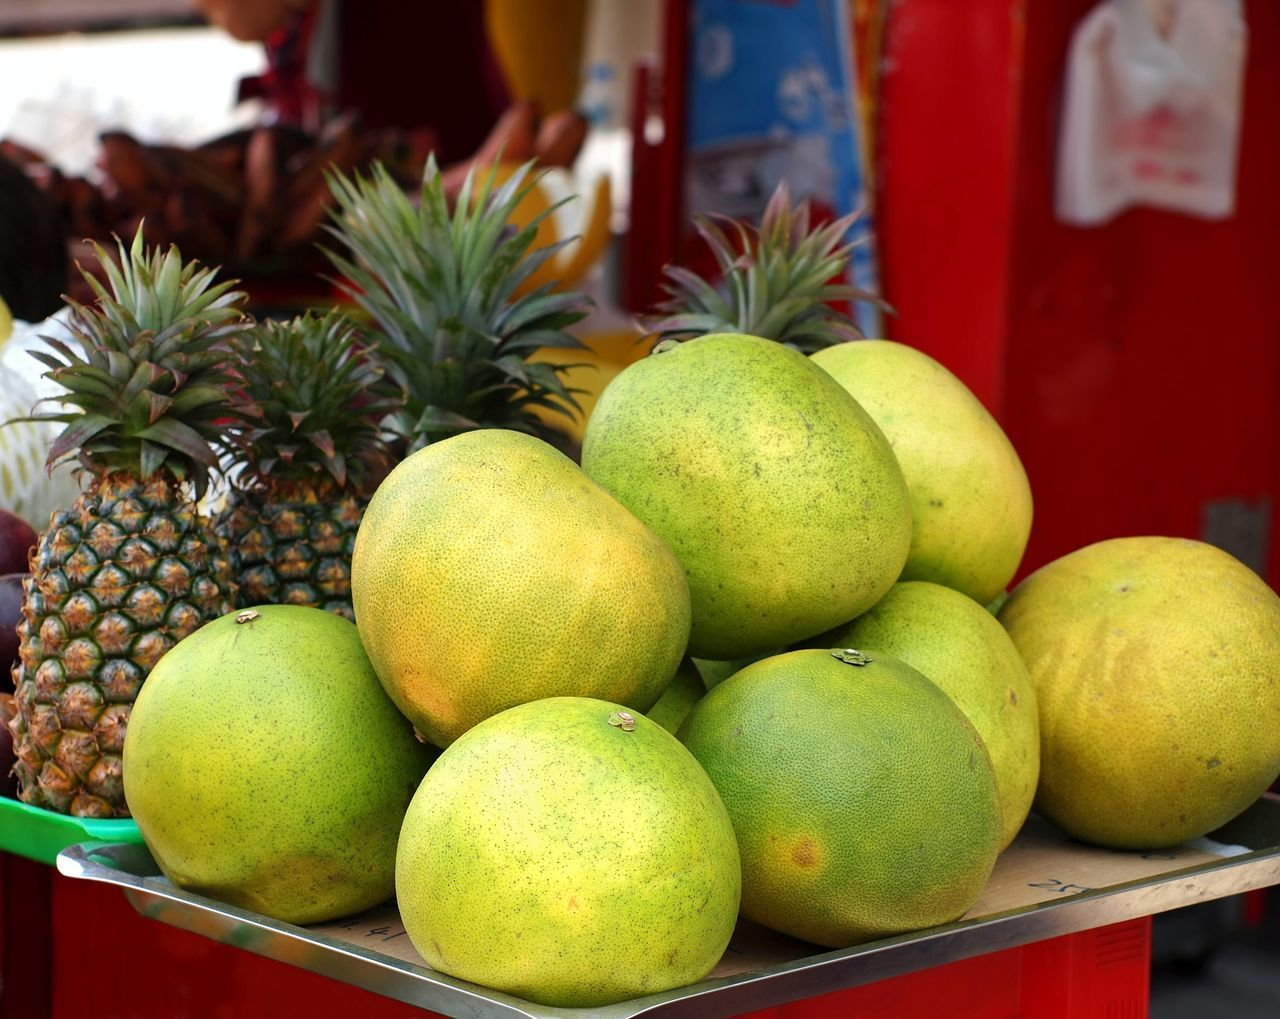 Pomelos for sale at the market. They are also called Chinese grapefruit or shaddock Citrus  Citrus Fruits Freshness Fruit Fruit Stand Grapefruit Healthy Eating Market Pineapples Pomelo Shaddock